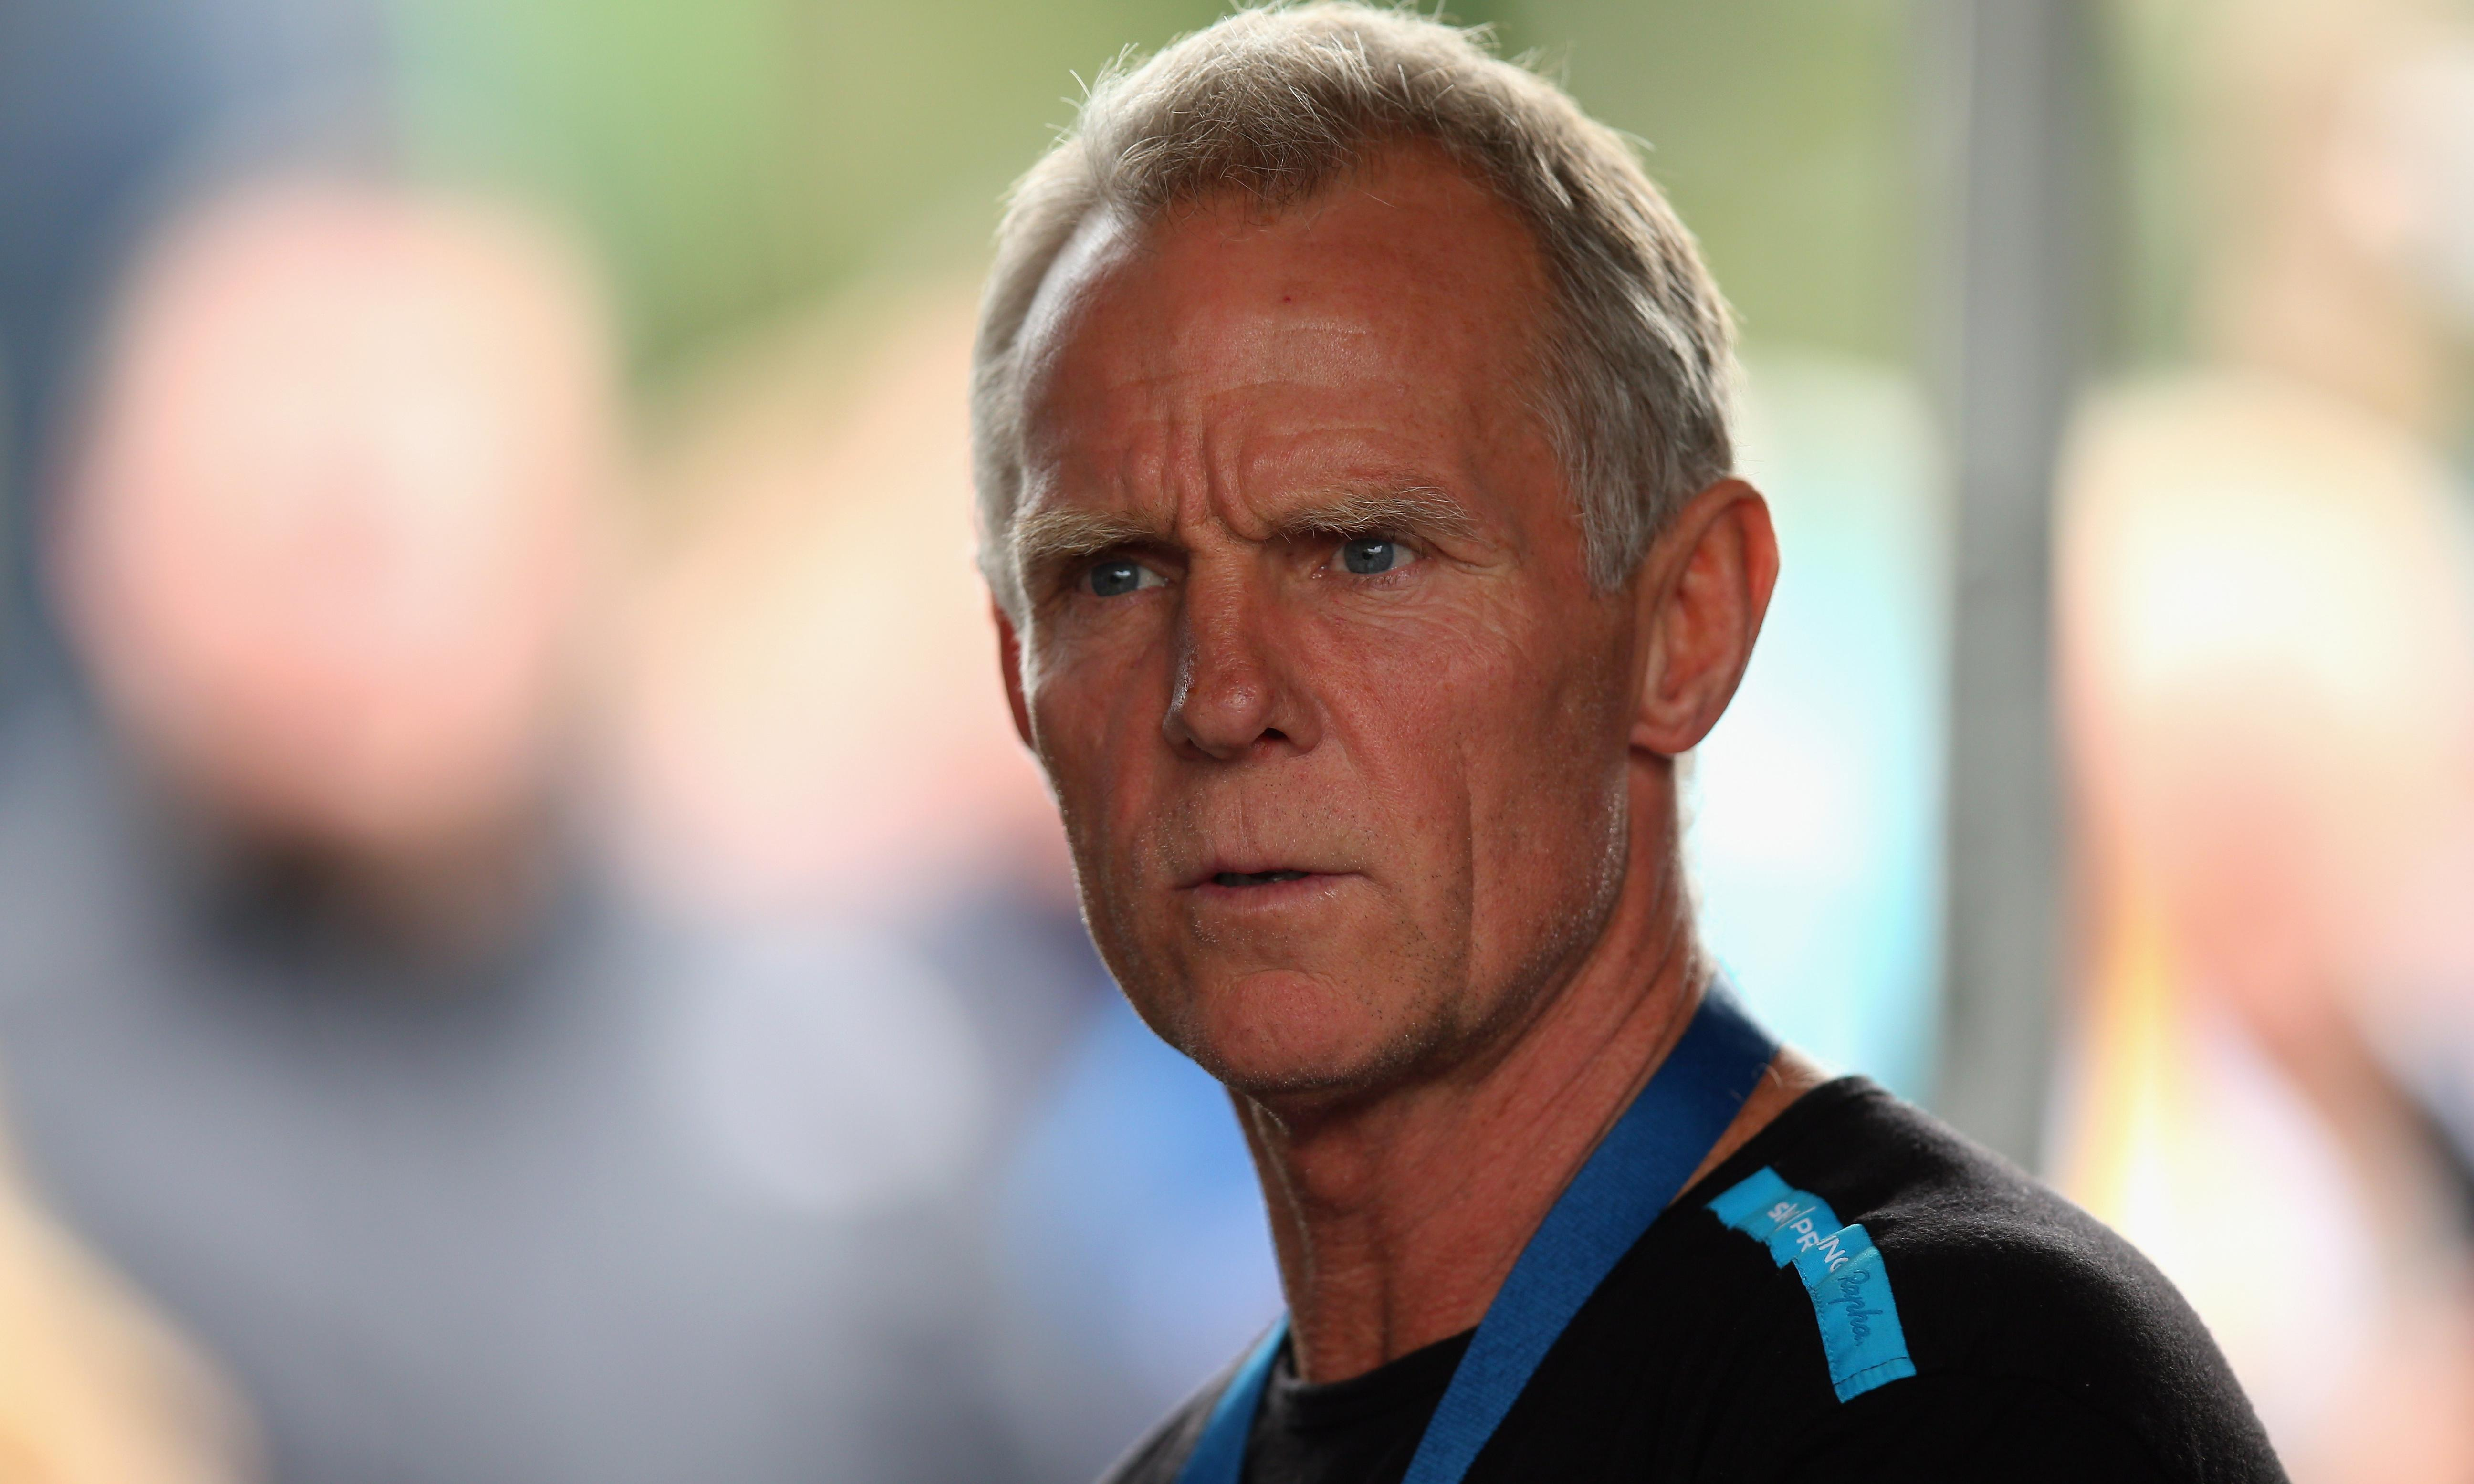 Shane Sutton testimony at Freeman tribunal delayed by legal arguments